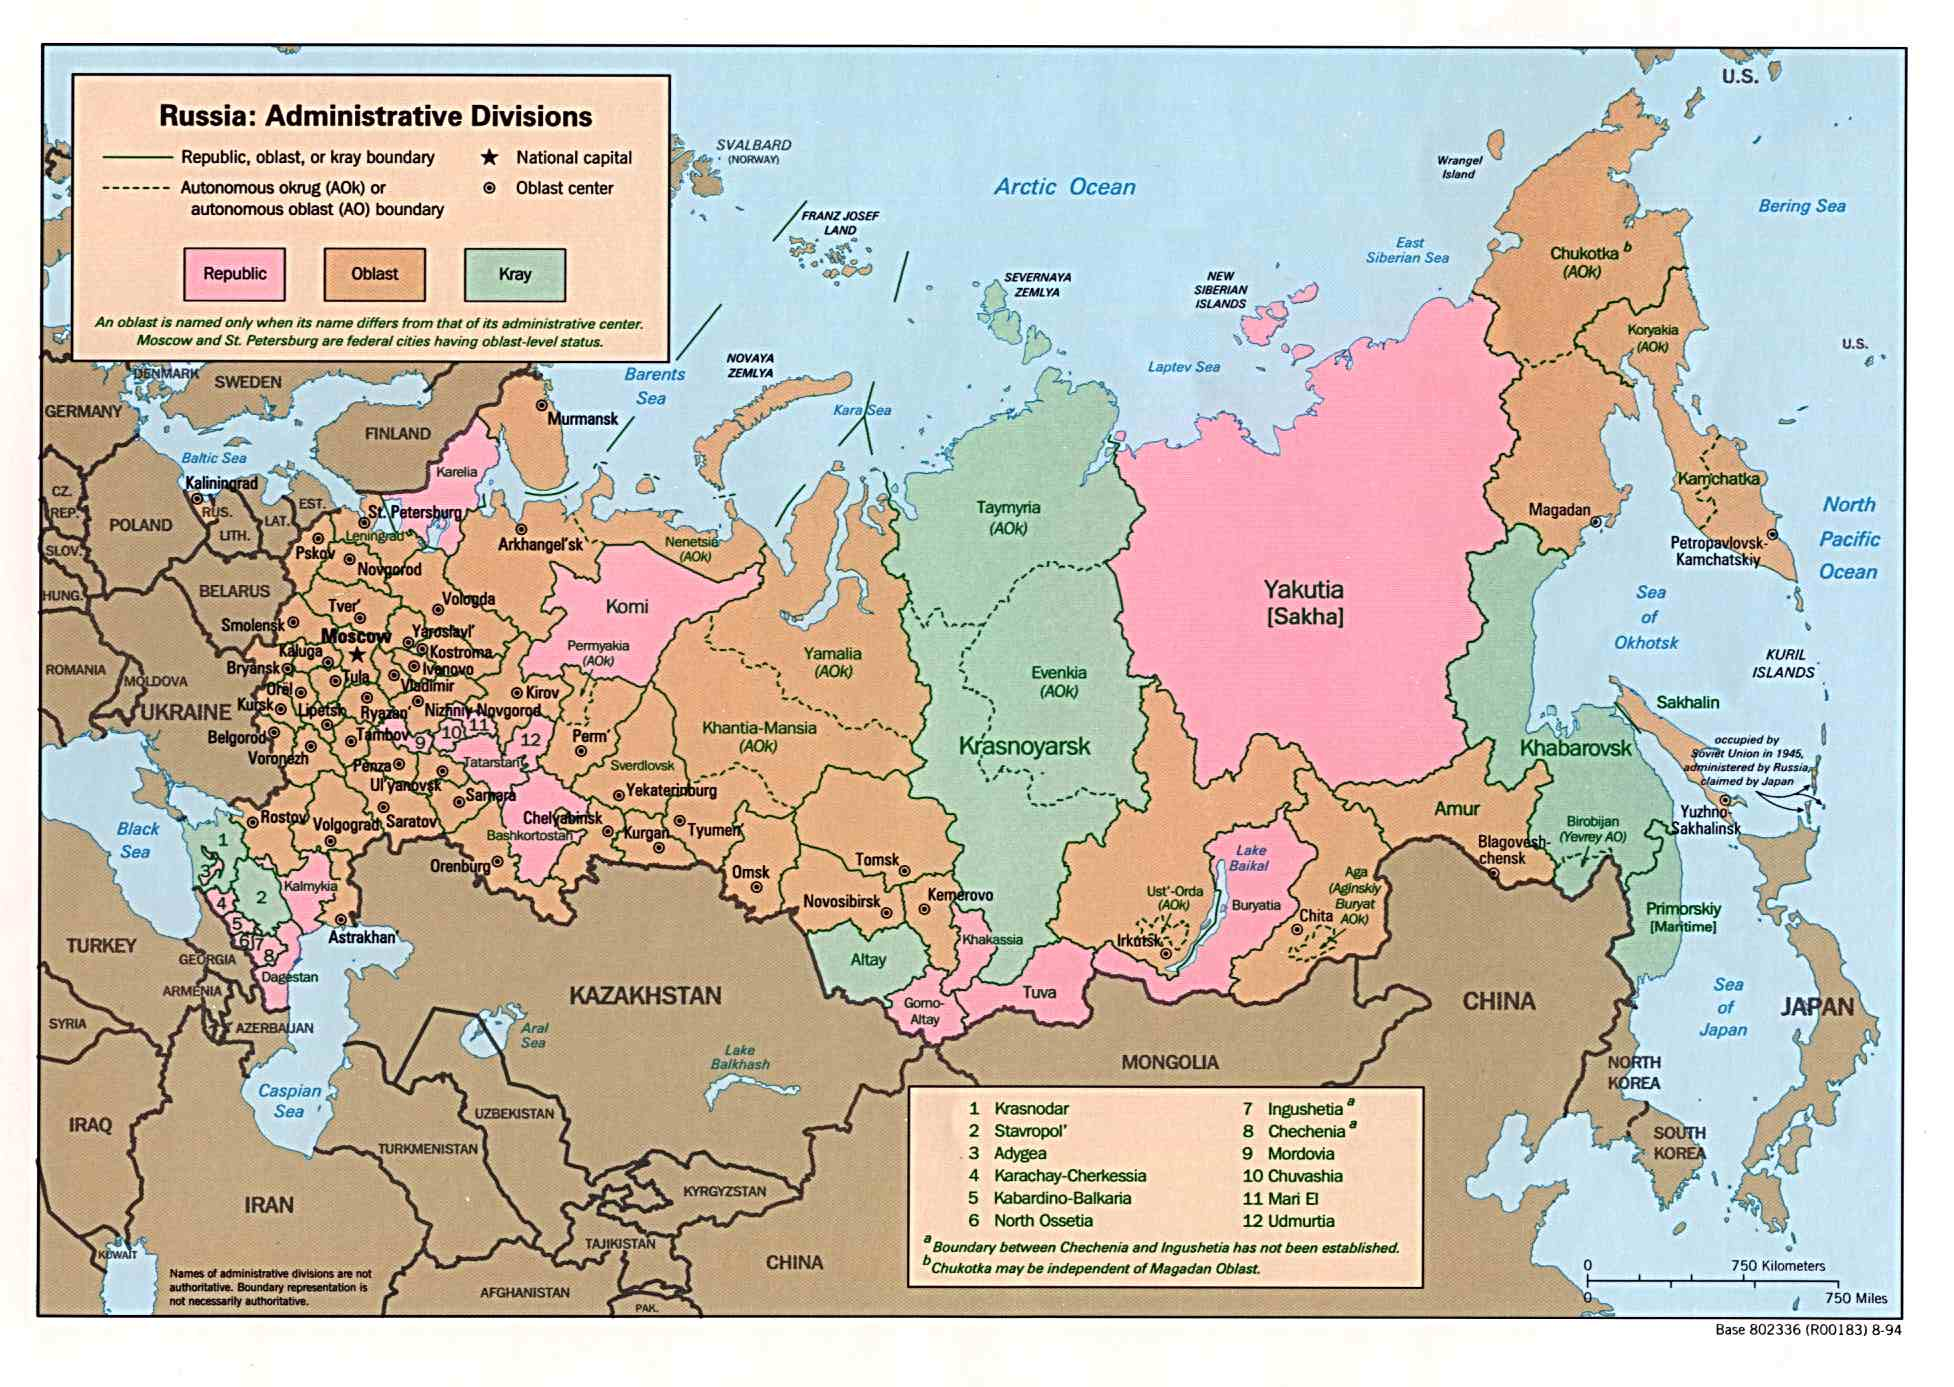 Maps Of Russia Detailed Map Of Russia With Cities And Regions - Russia administrative map